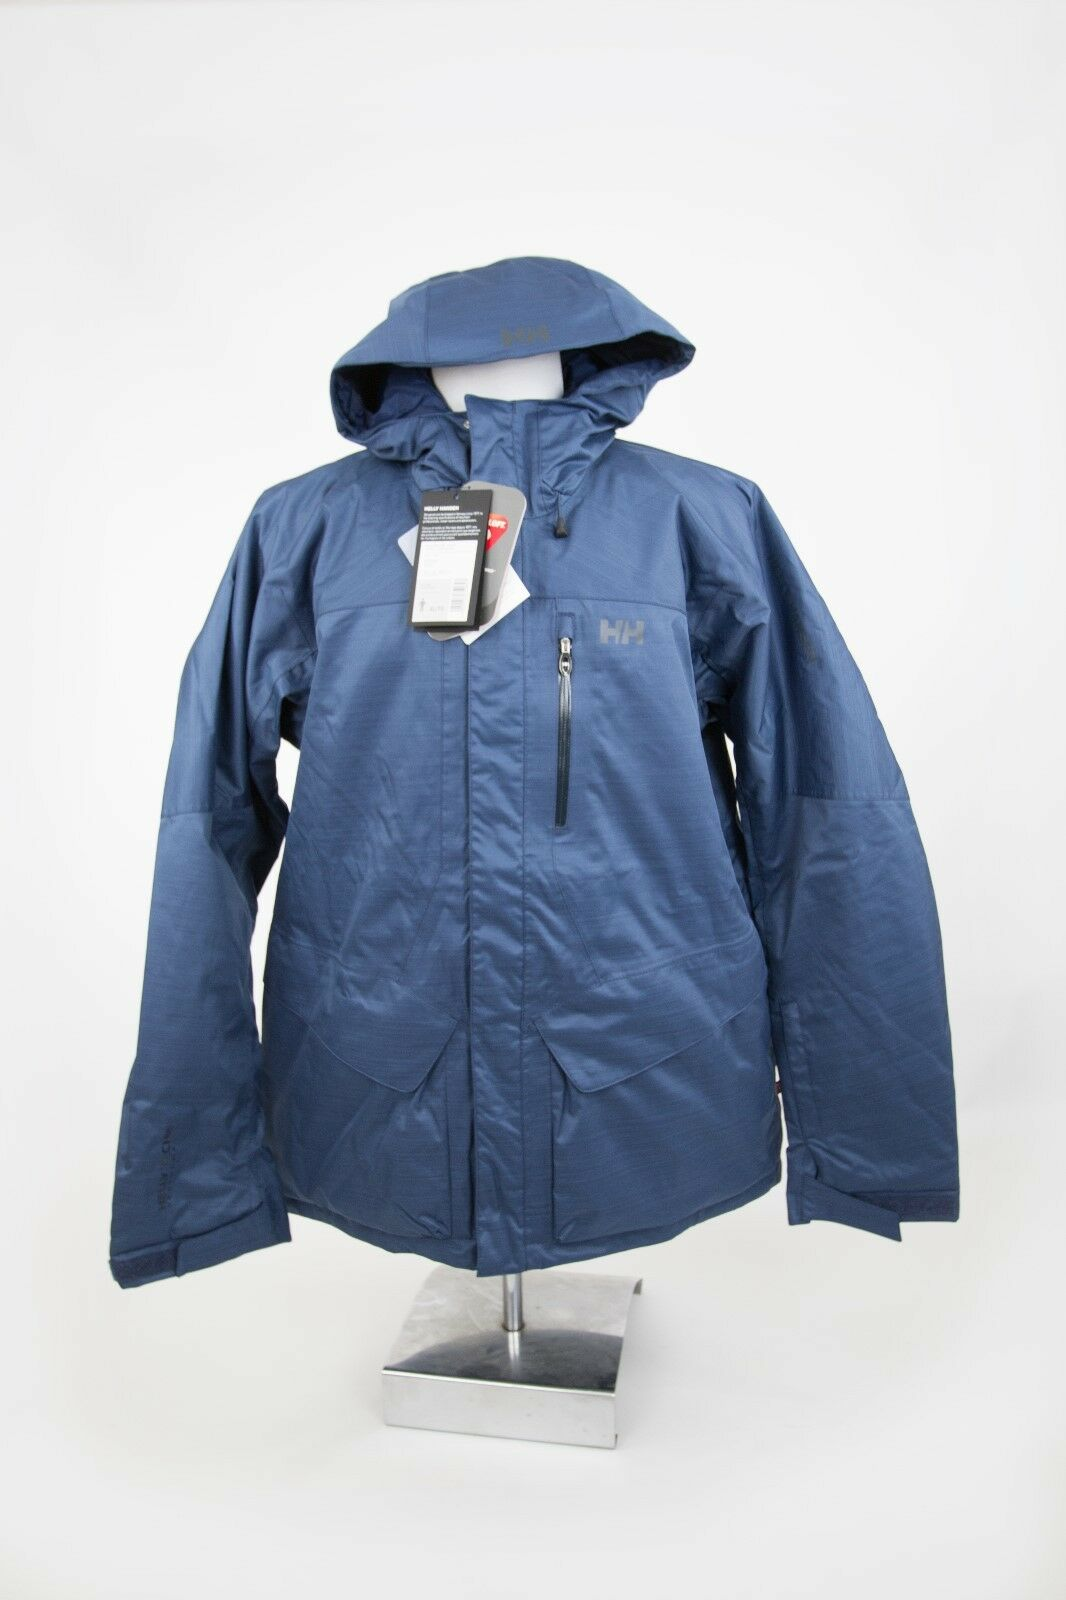 HELLY HANSEN Mens Navy  Clandestine RECCO ARS SKI Coat Size Small .99 OFFER  come to choose your own sports style